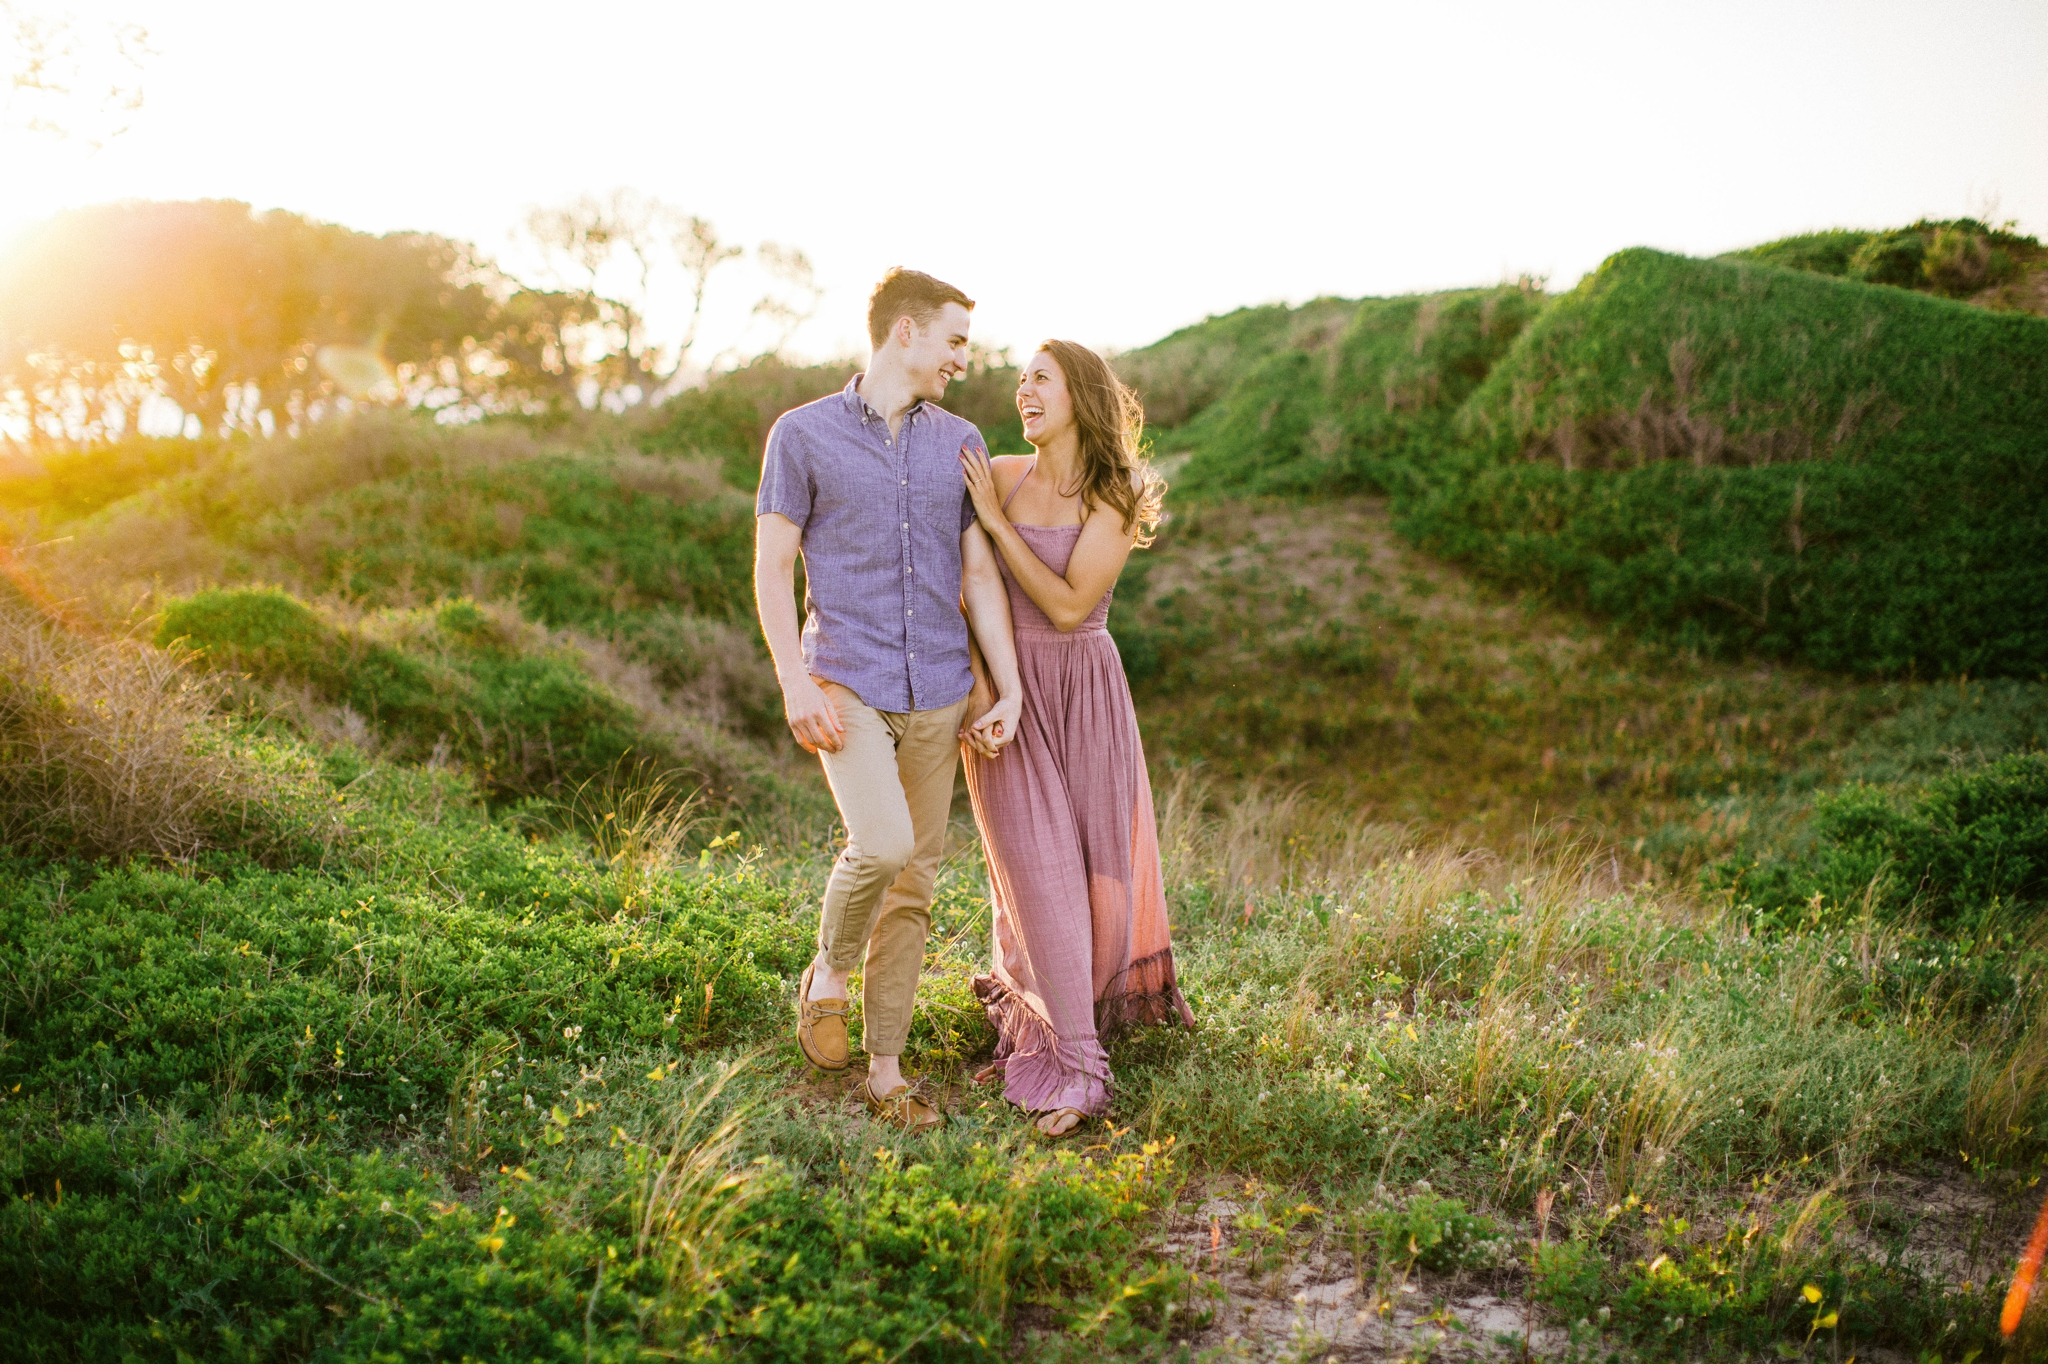 couple walking and laughing - in front of lush green dunes and hills with the sunset behind them - Woman is in a flowy pastel maxi dress - candid and unposed outdoor golden light session - engagement photographer in honolulu, oahu, hawaii - johanna dye photography